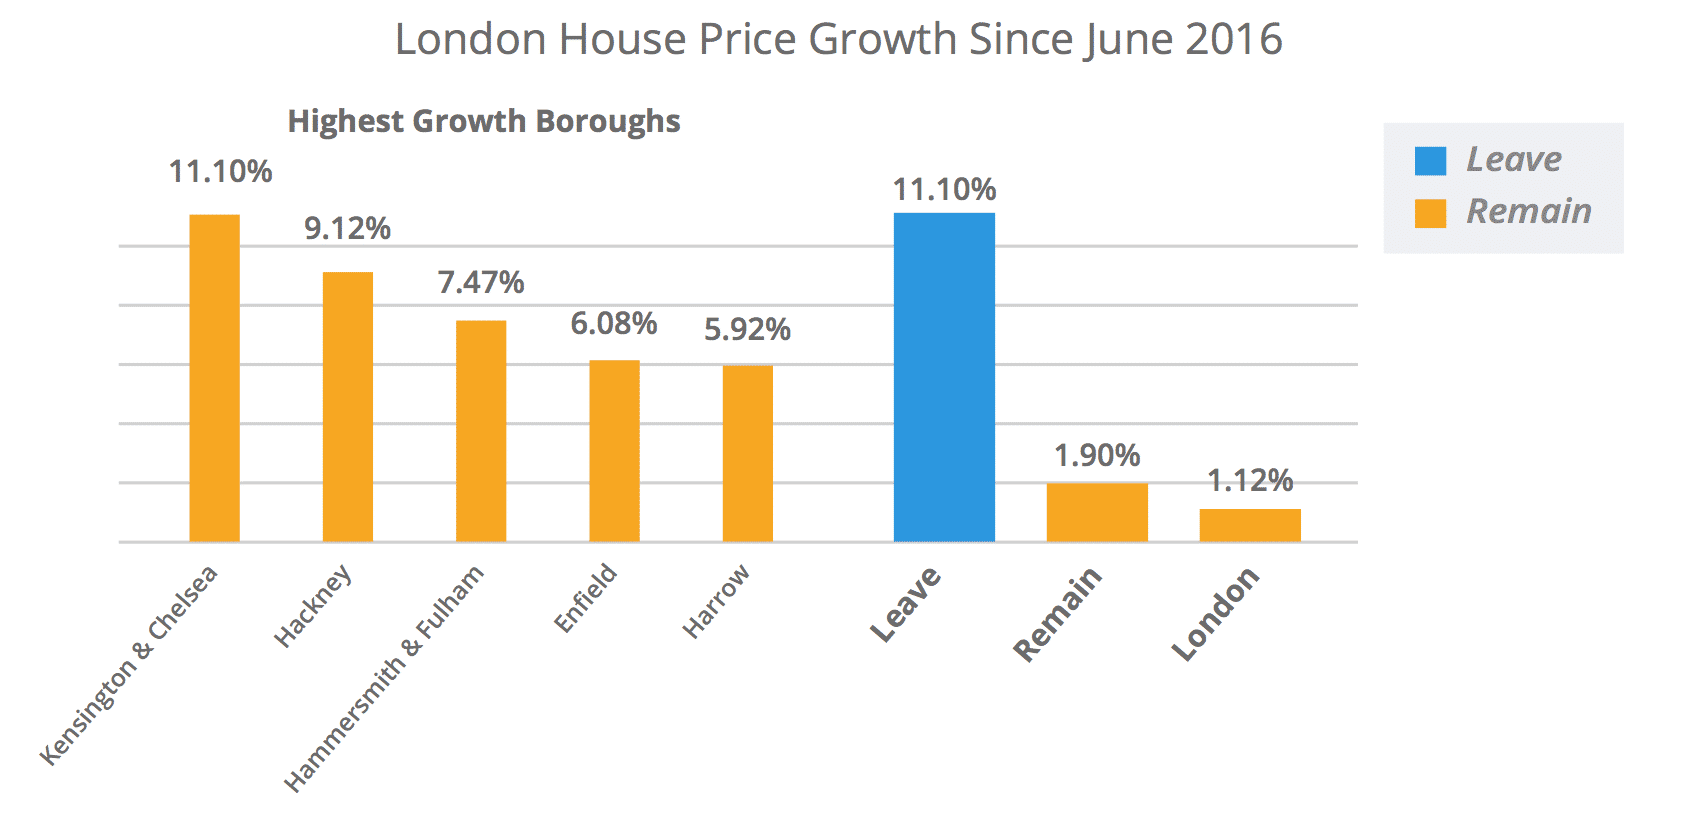 London House Price